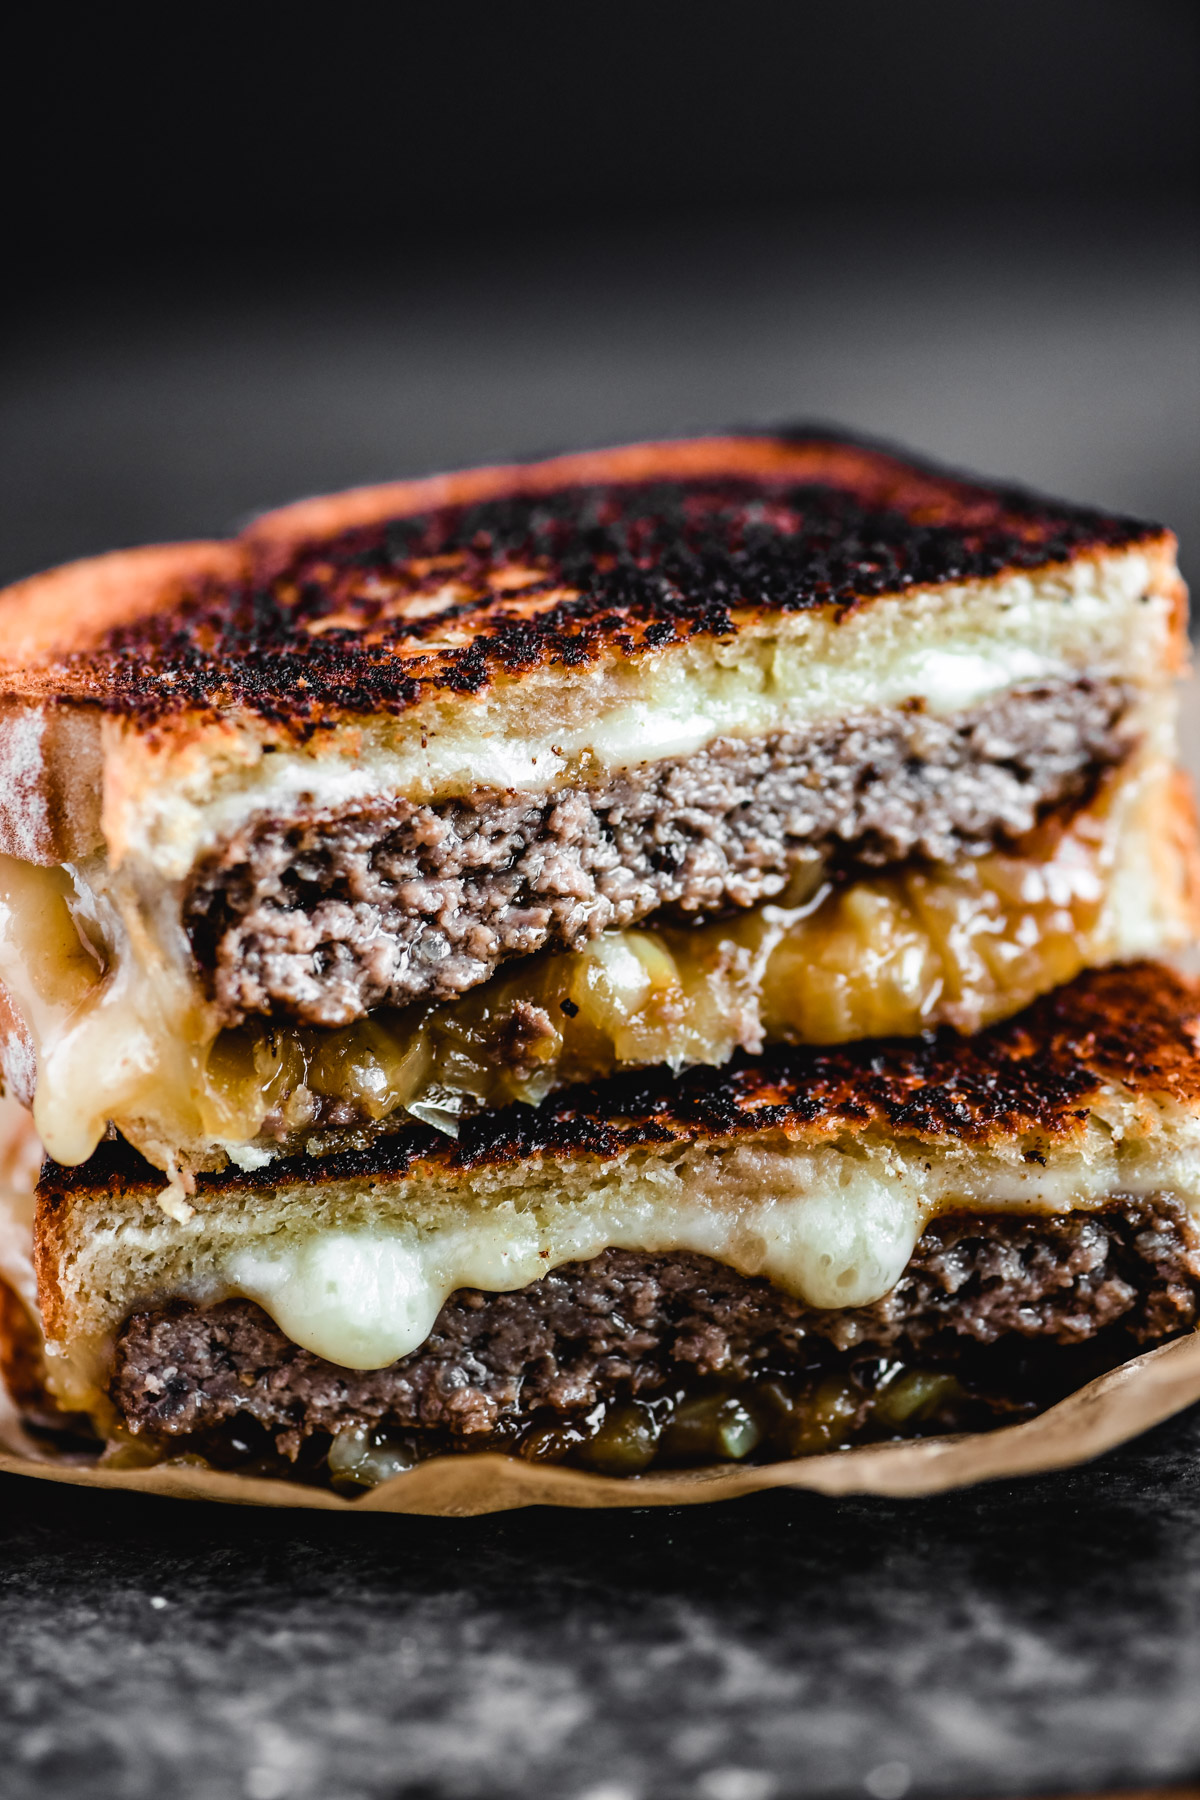 Halves of classic patty melt sandwich, stacked on a plate with cheese dripping